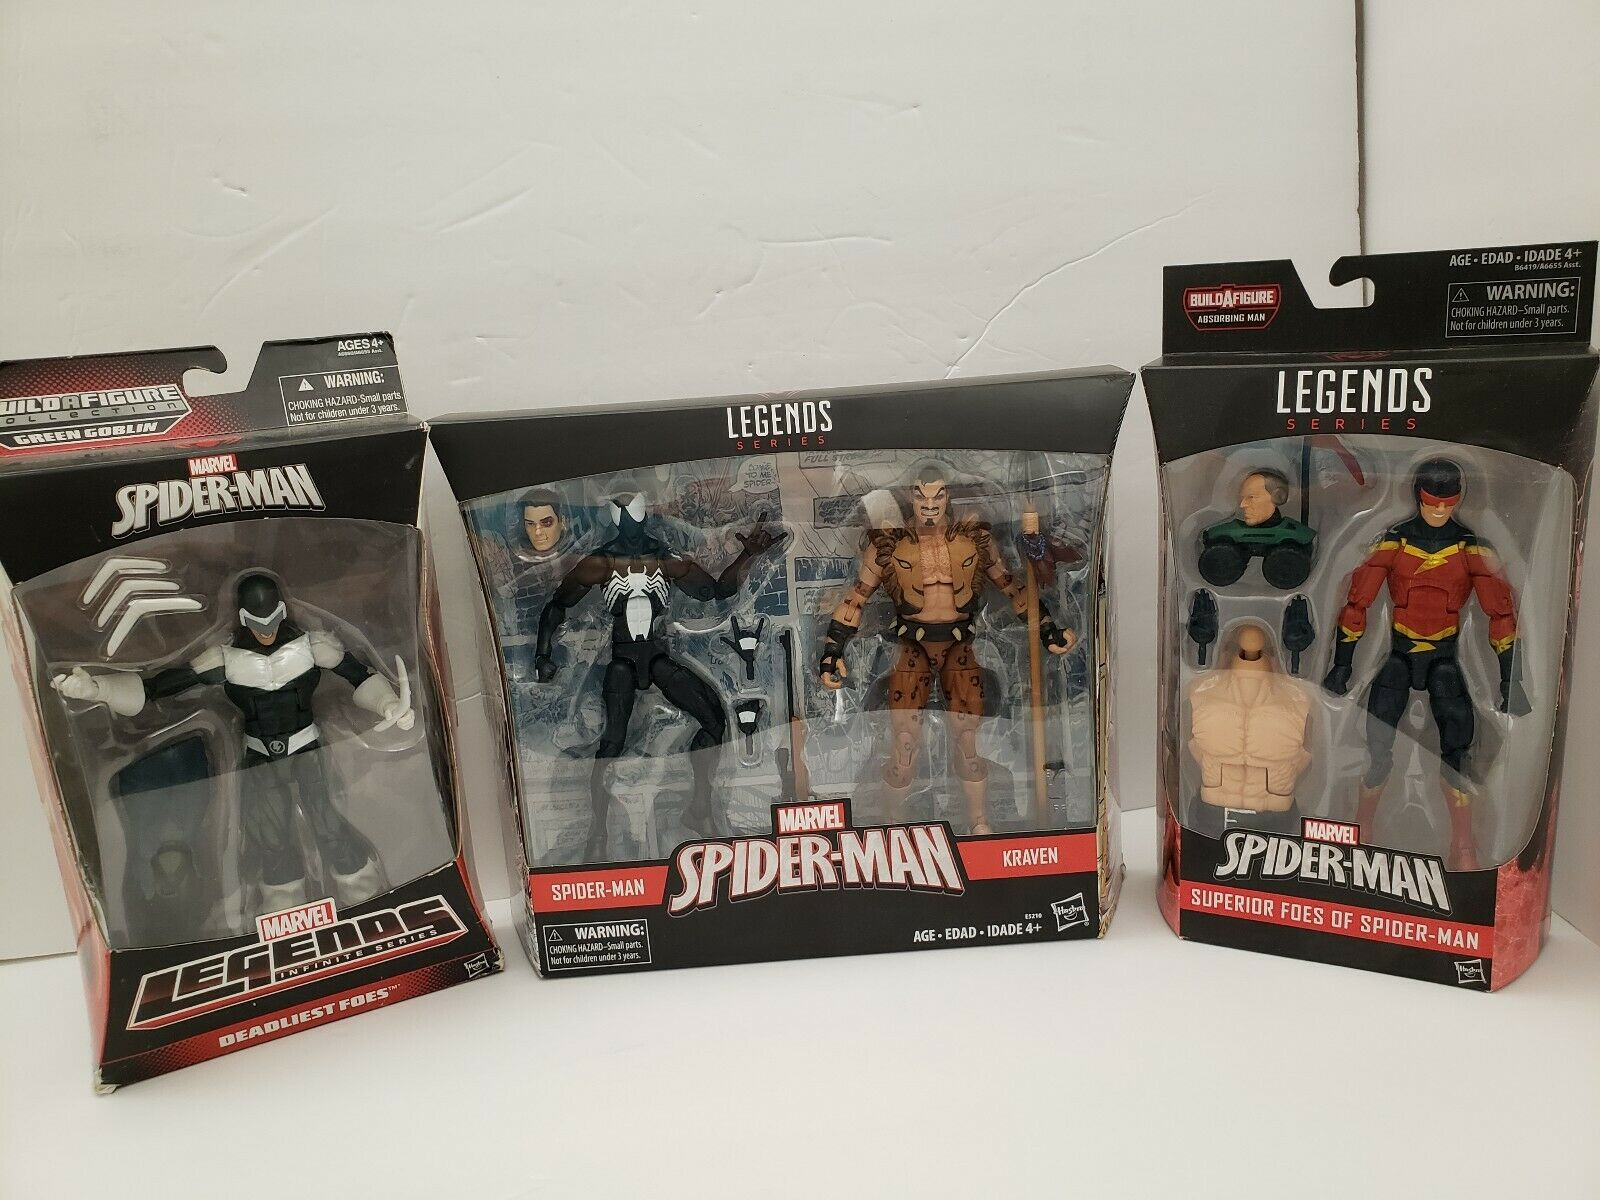 MARVEL LEGENDS SPIDER-MAN AND KRAVEN; BOOMERANG & SPEED DEMON LOT